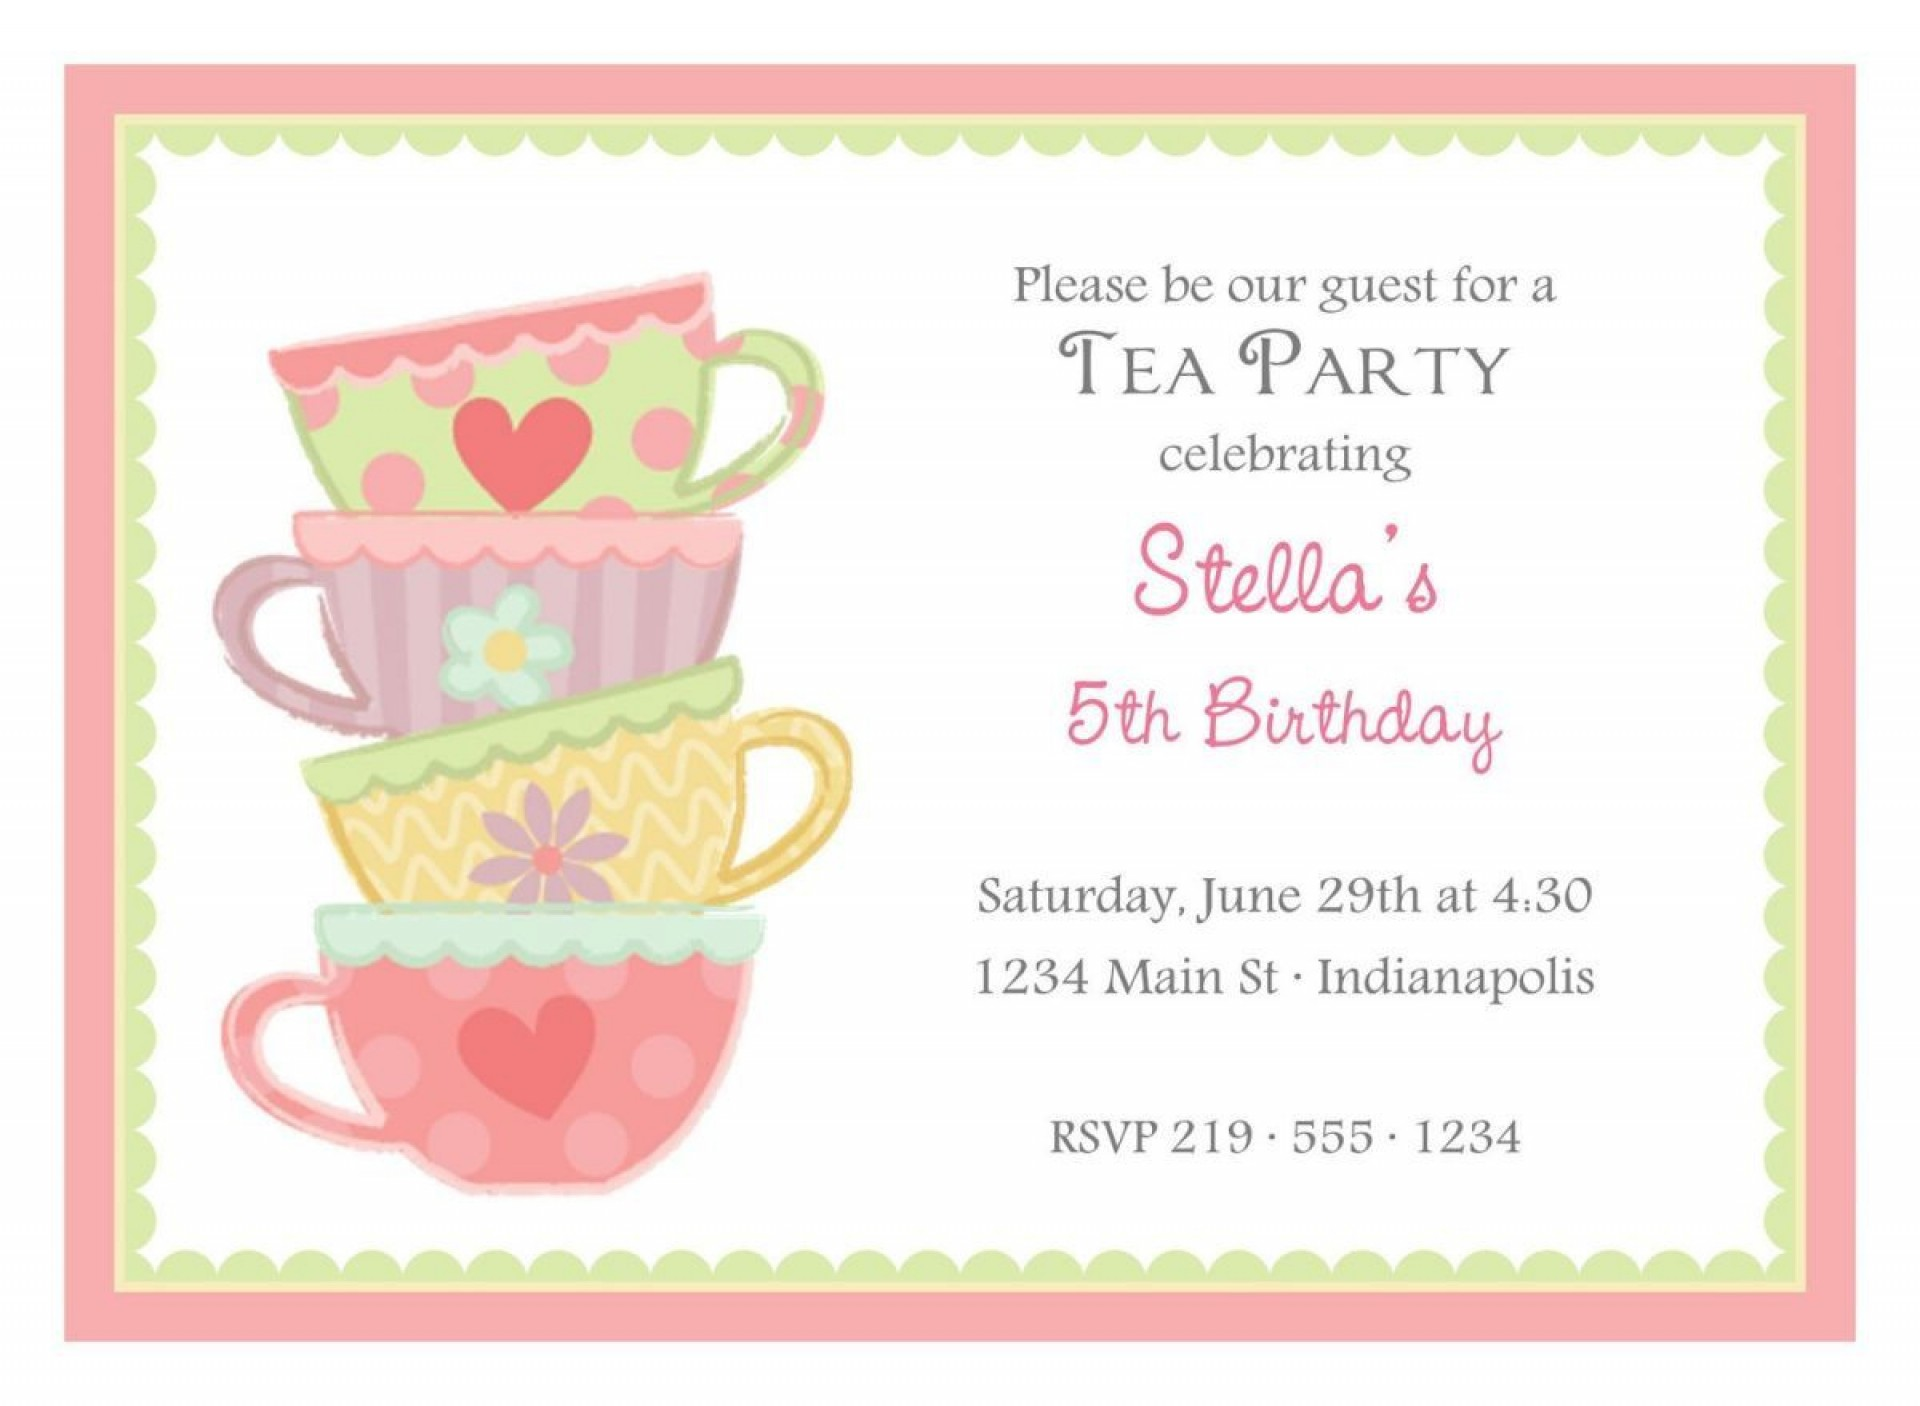 003 Formidable Tea Party Invitation Template Image  Card Victorian Wording For Bridal Shower1920